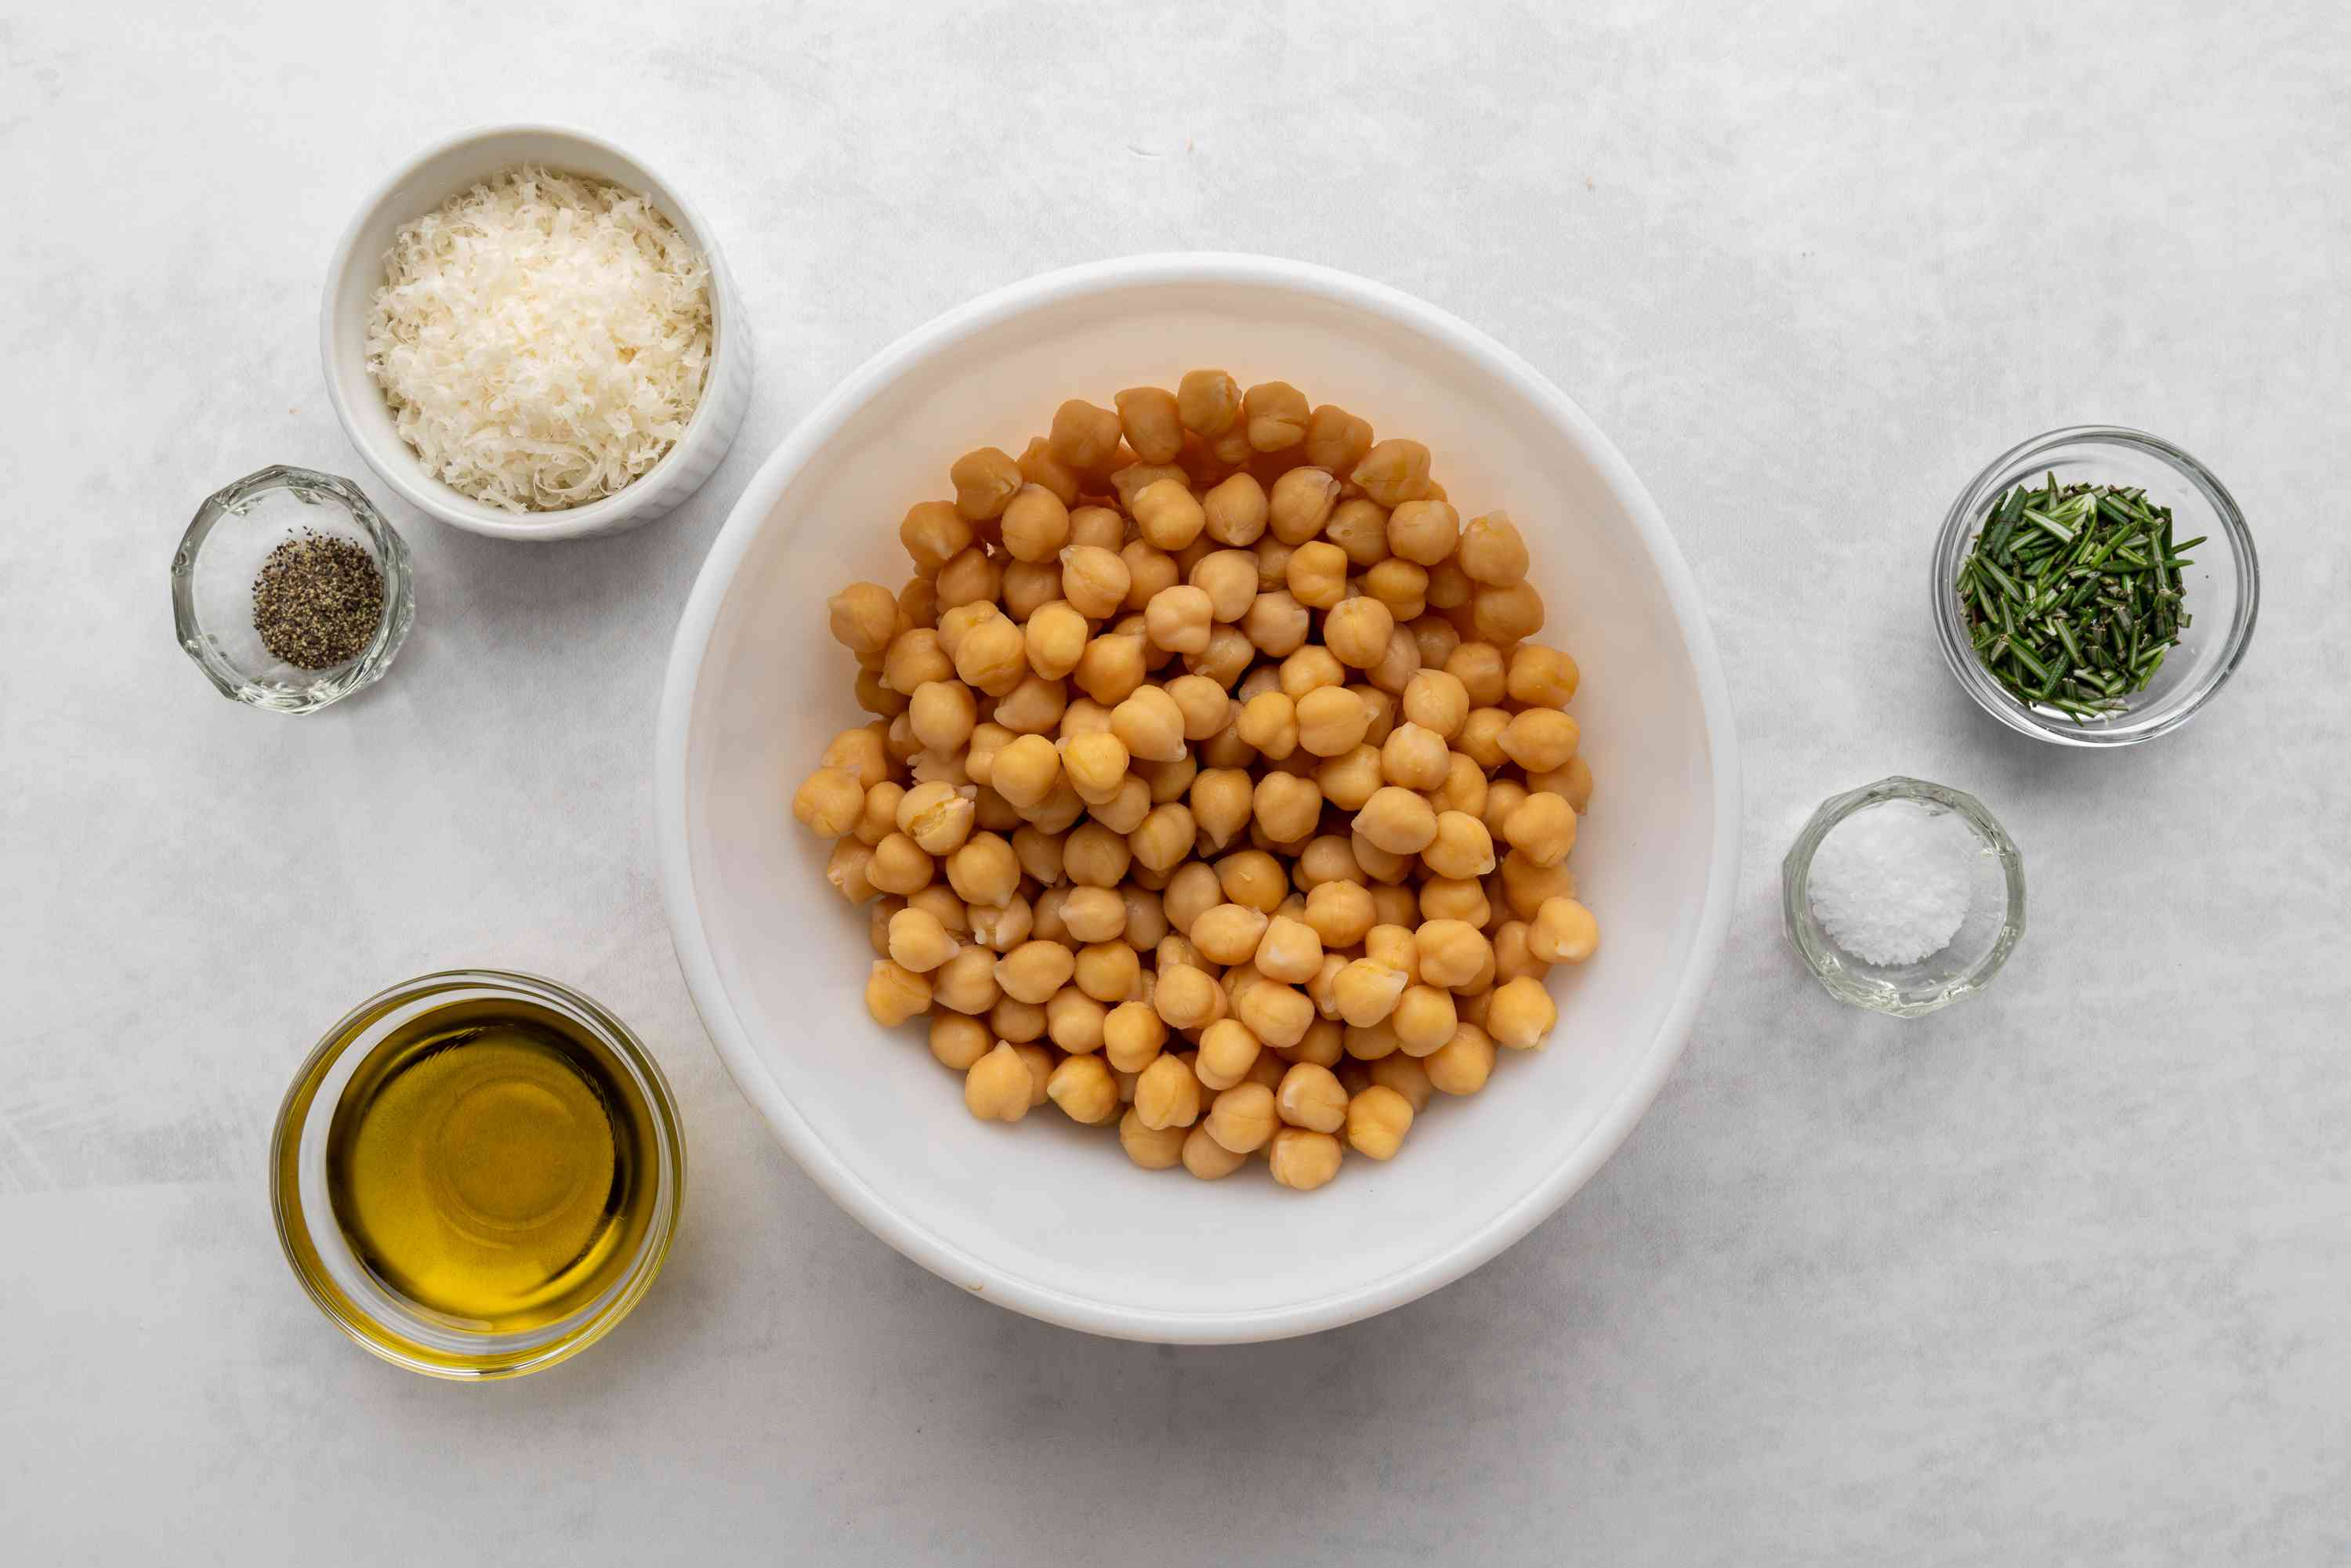 Roasted Chickpeas With Parmesan Cheese ingredients